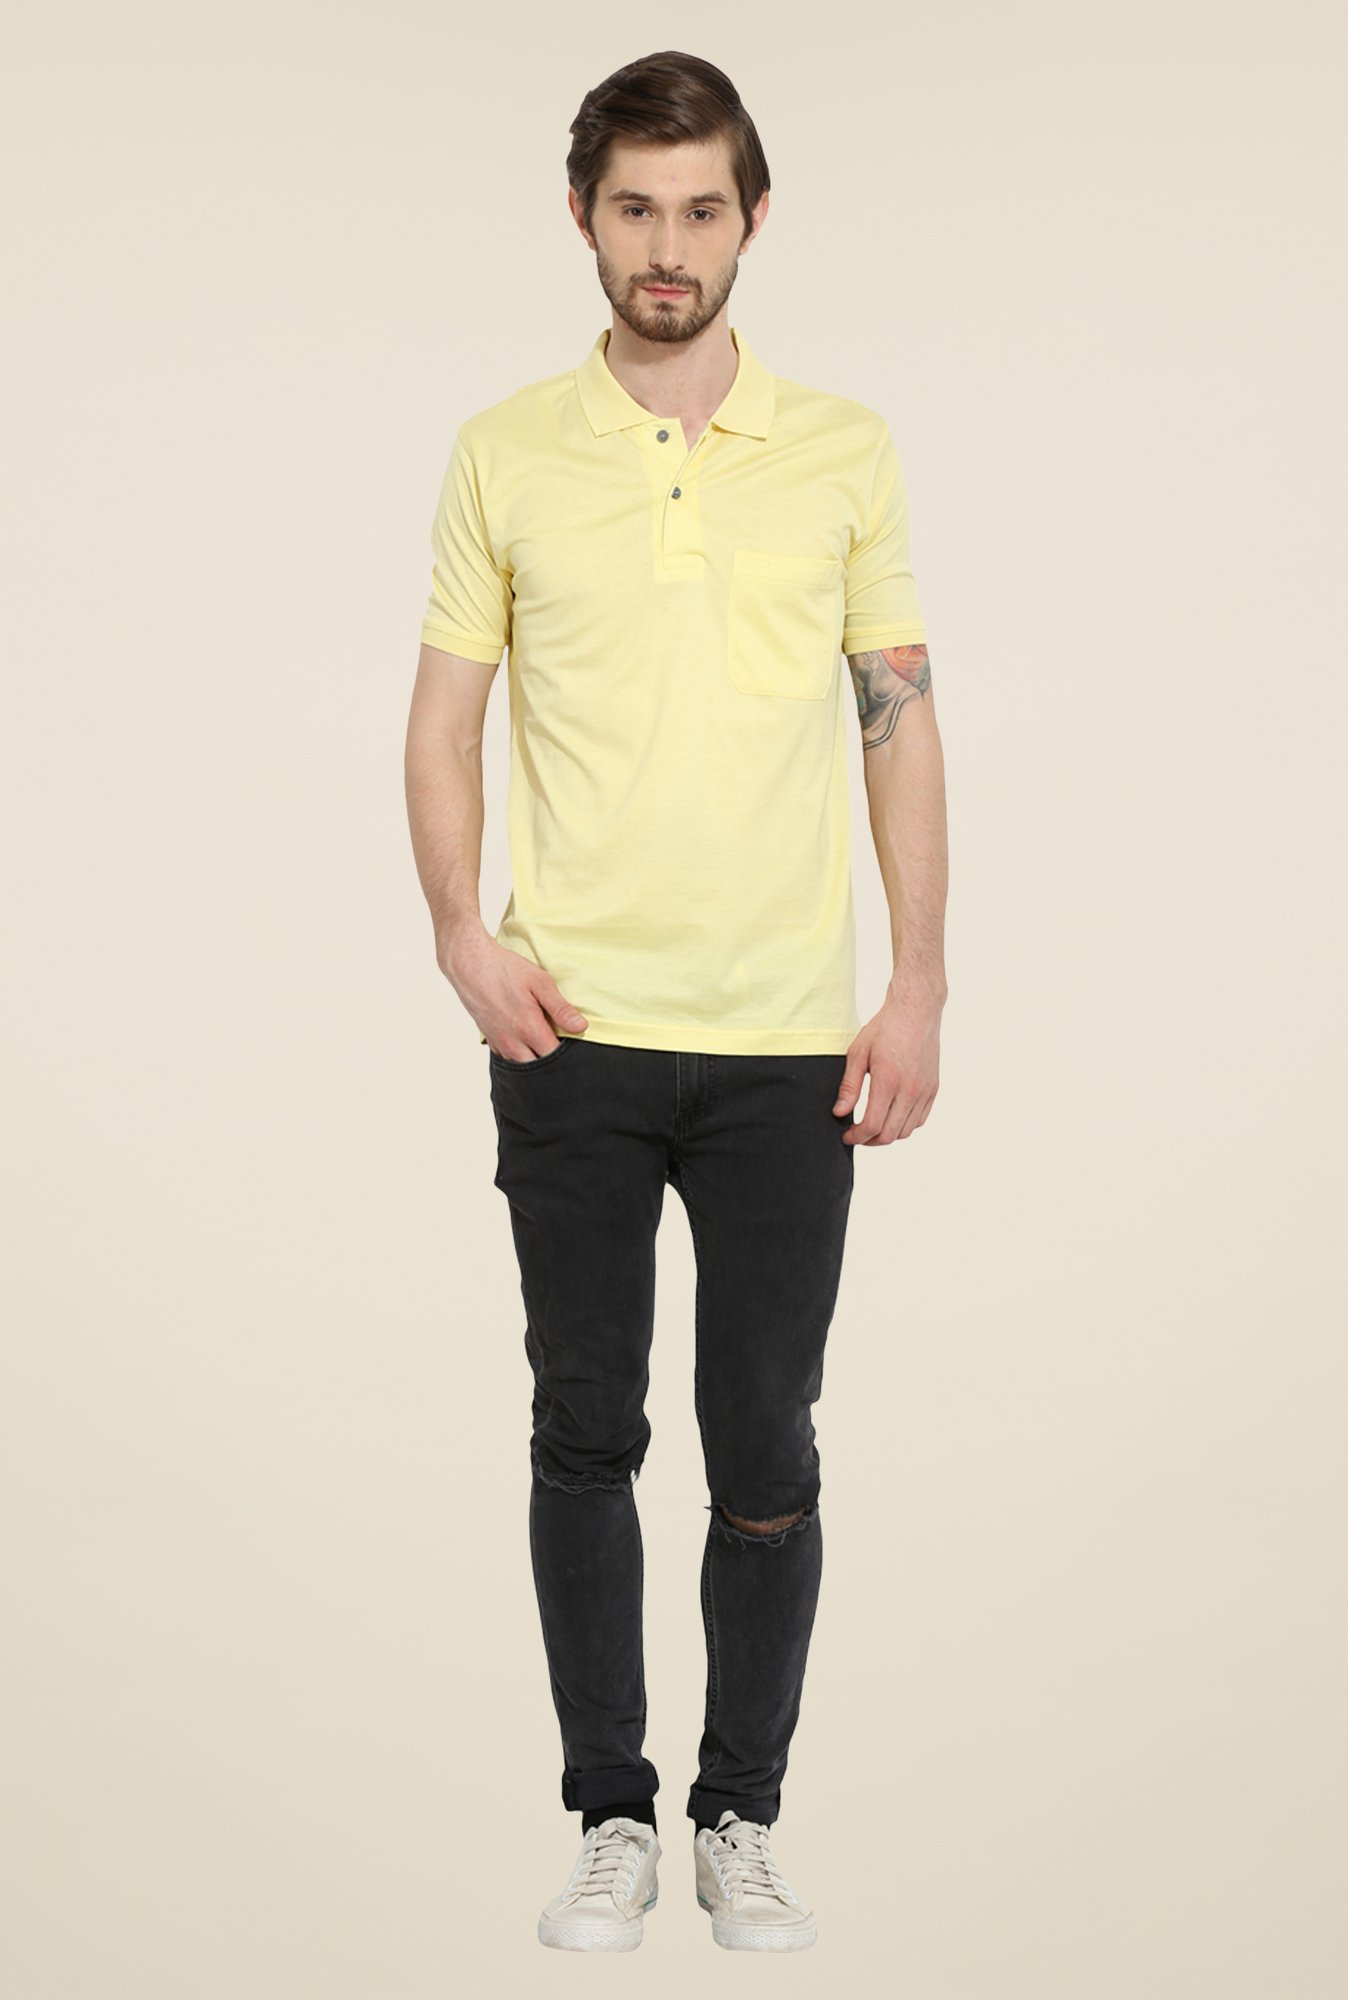 Duke Stardust Yellow Solid T-shirt